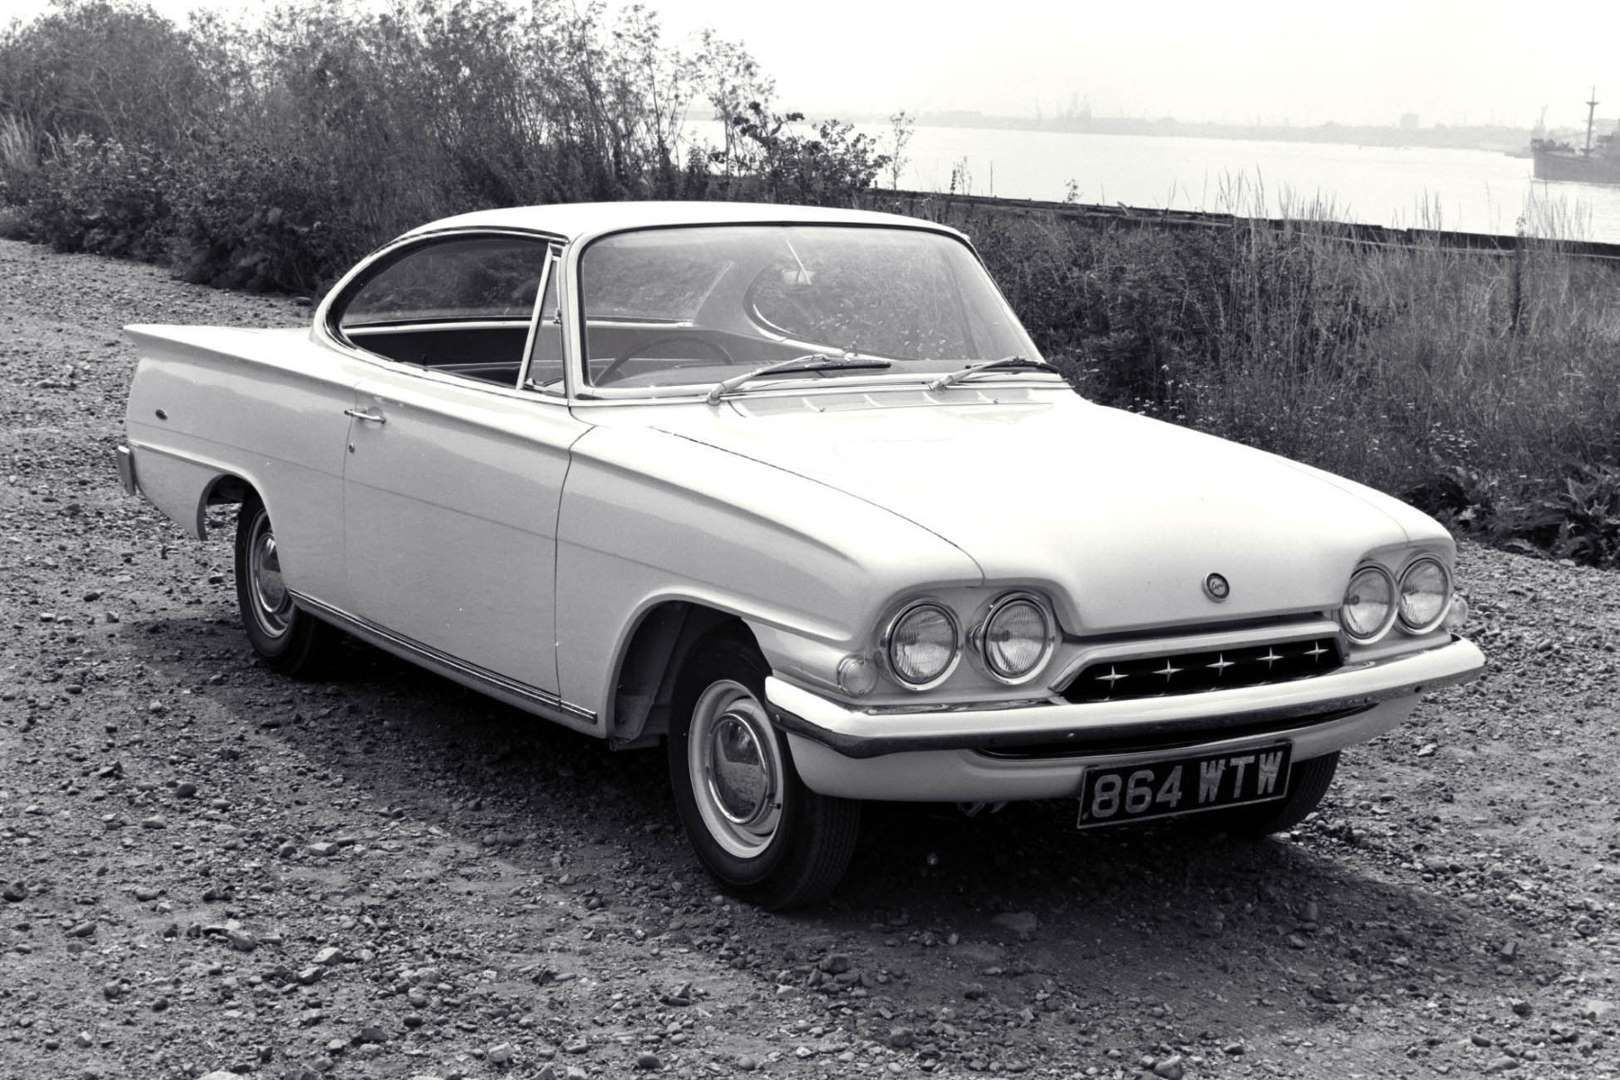 Ford Had Already Used The Capri Name Borrowed From An Island In